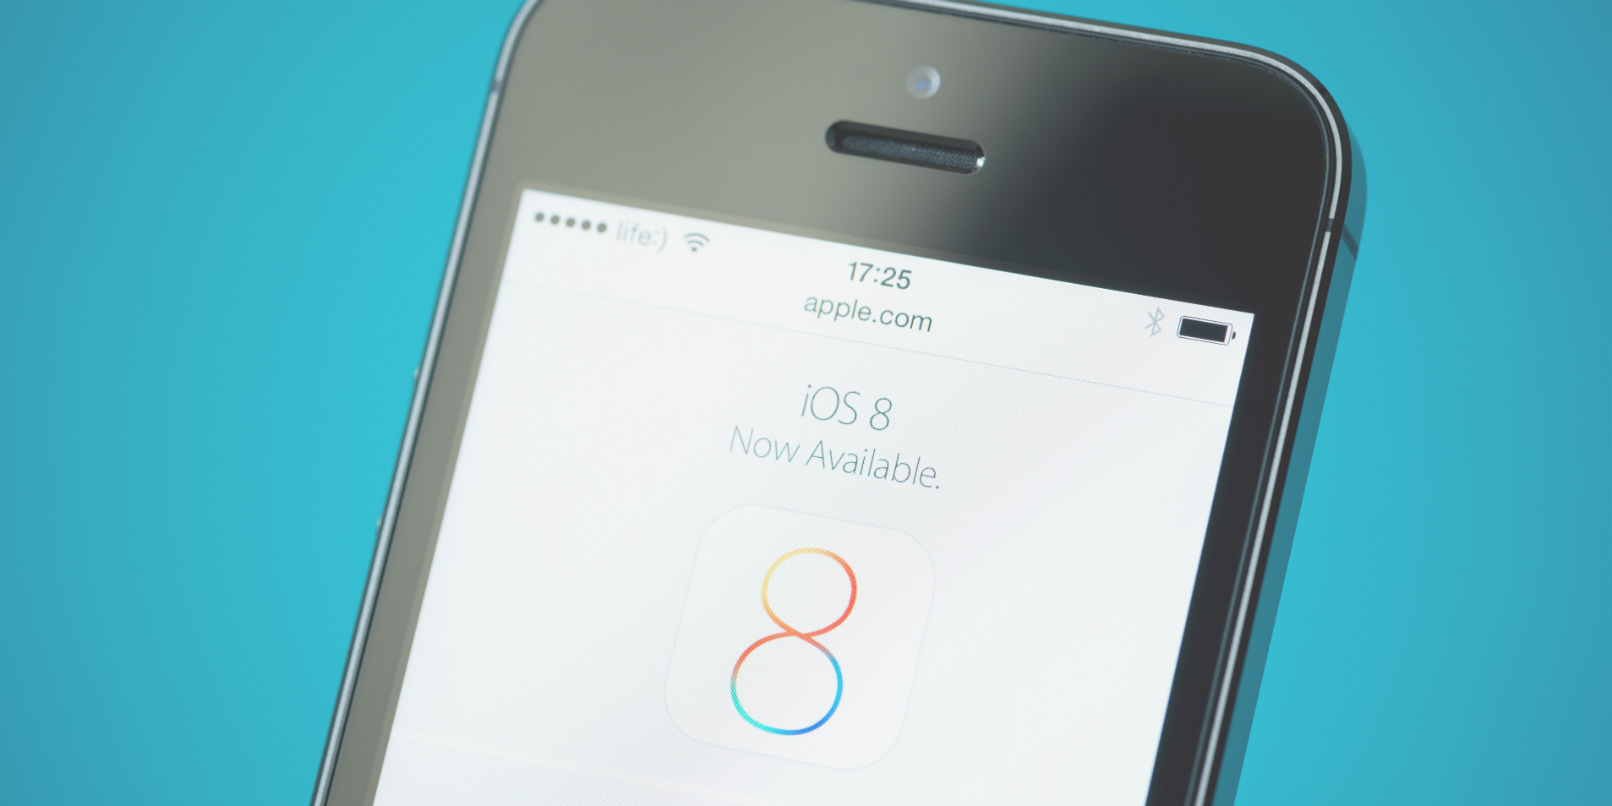 Learn to code iOS 8 apps with this course for only $89